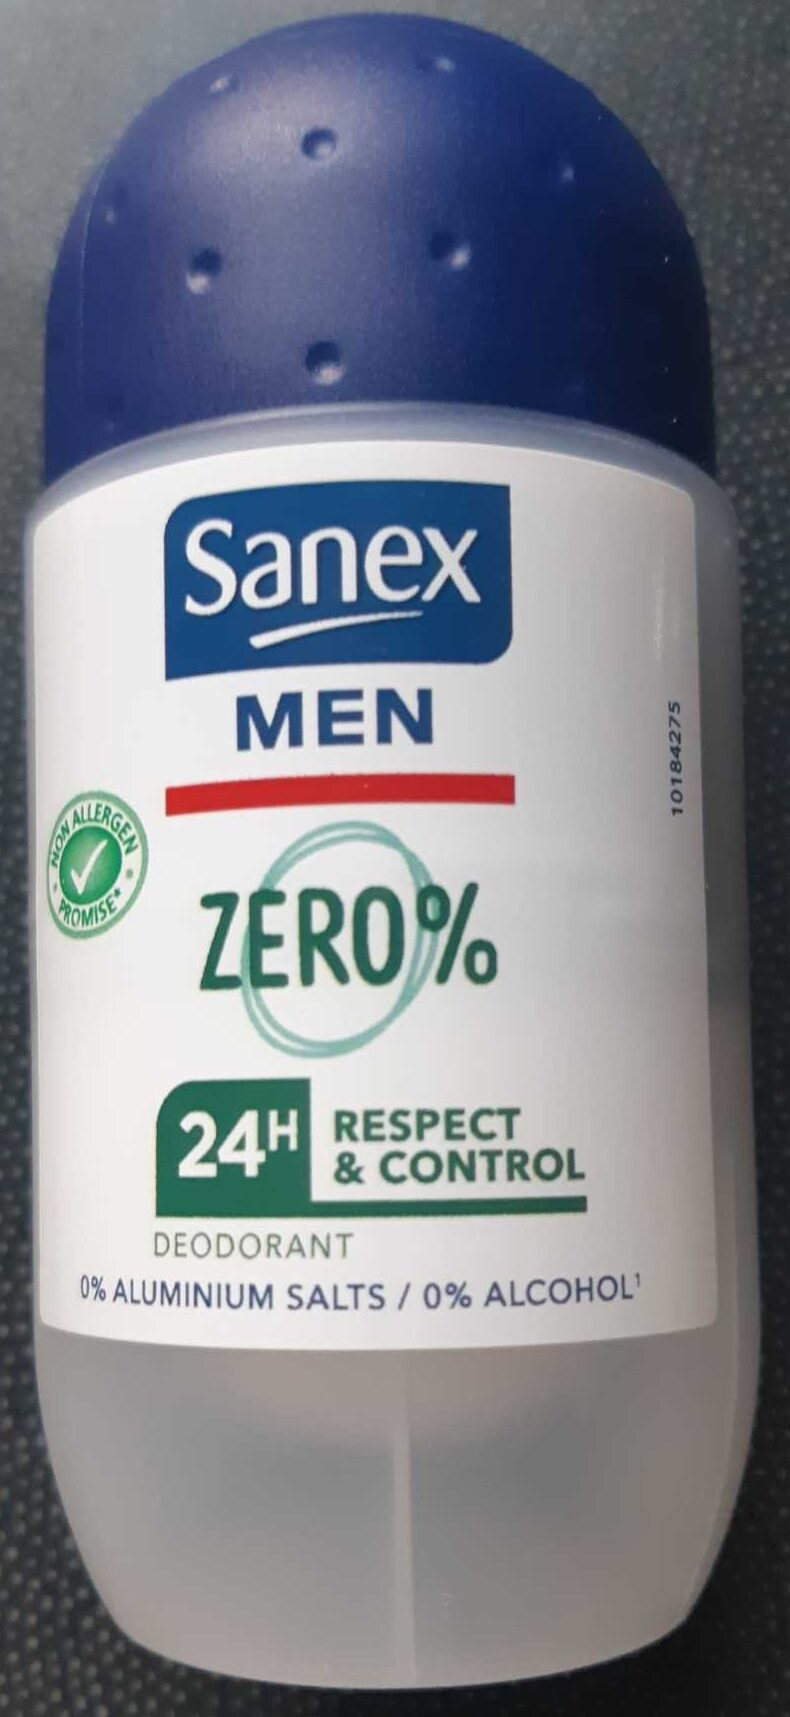 Sanex men 0% deodorant - Product